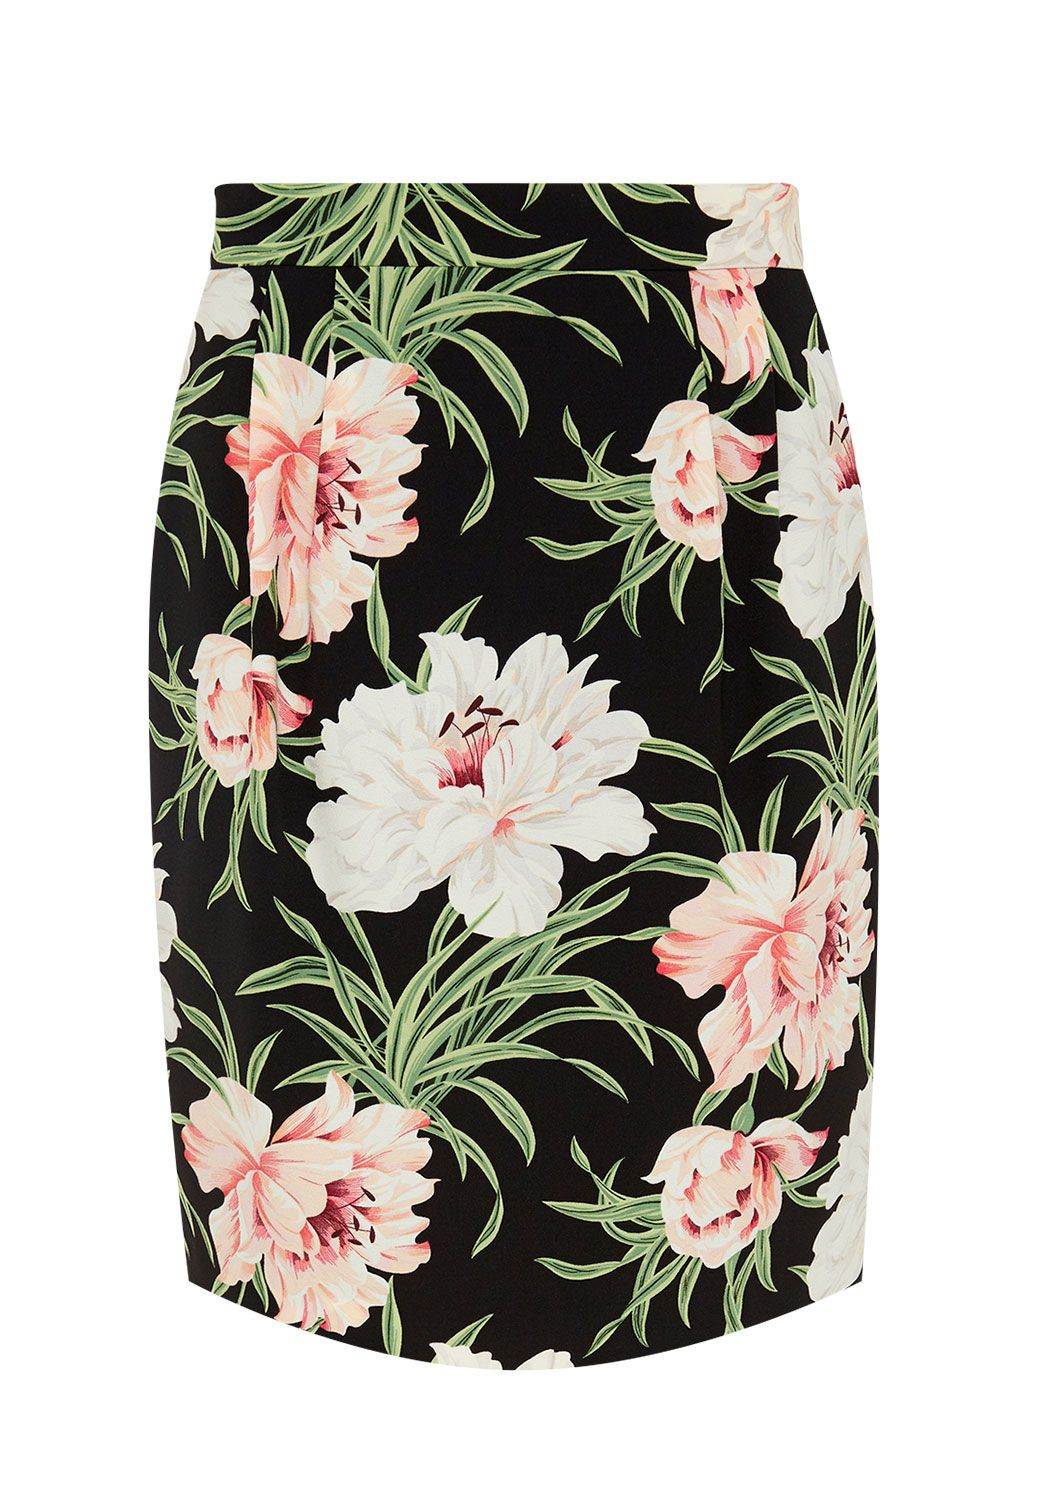 Hallhuber Skirt with exotic floral print, Multi-Coloured